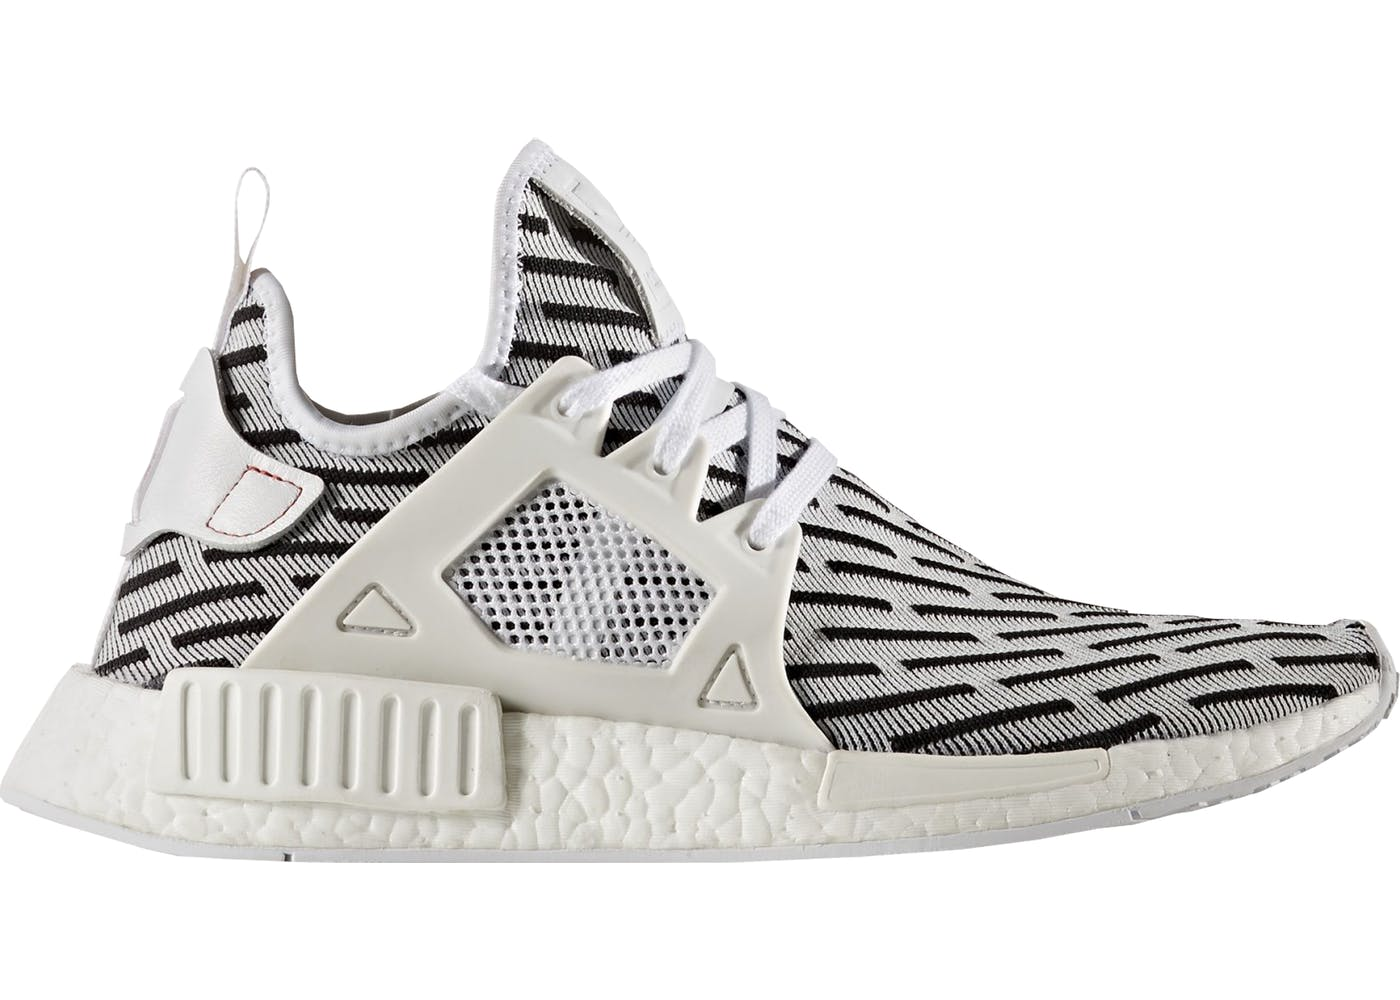 Adidas Originals NMD XR1 PK S32212 Lifestyle One Block Down